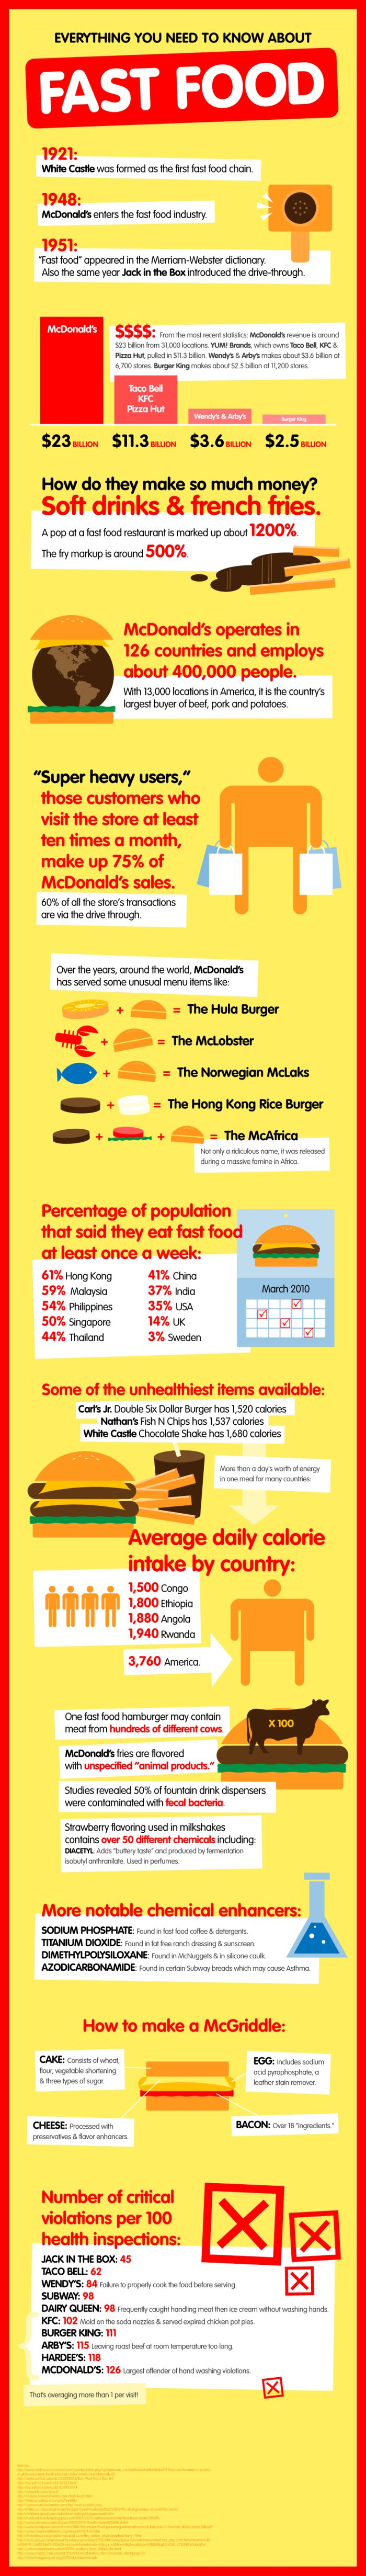 Everything You Need to Know About Fast Food (infographic)